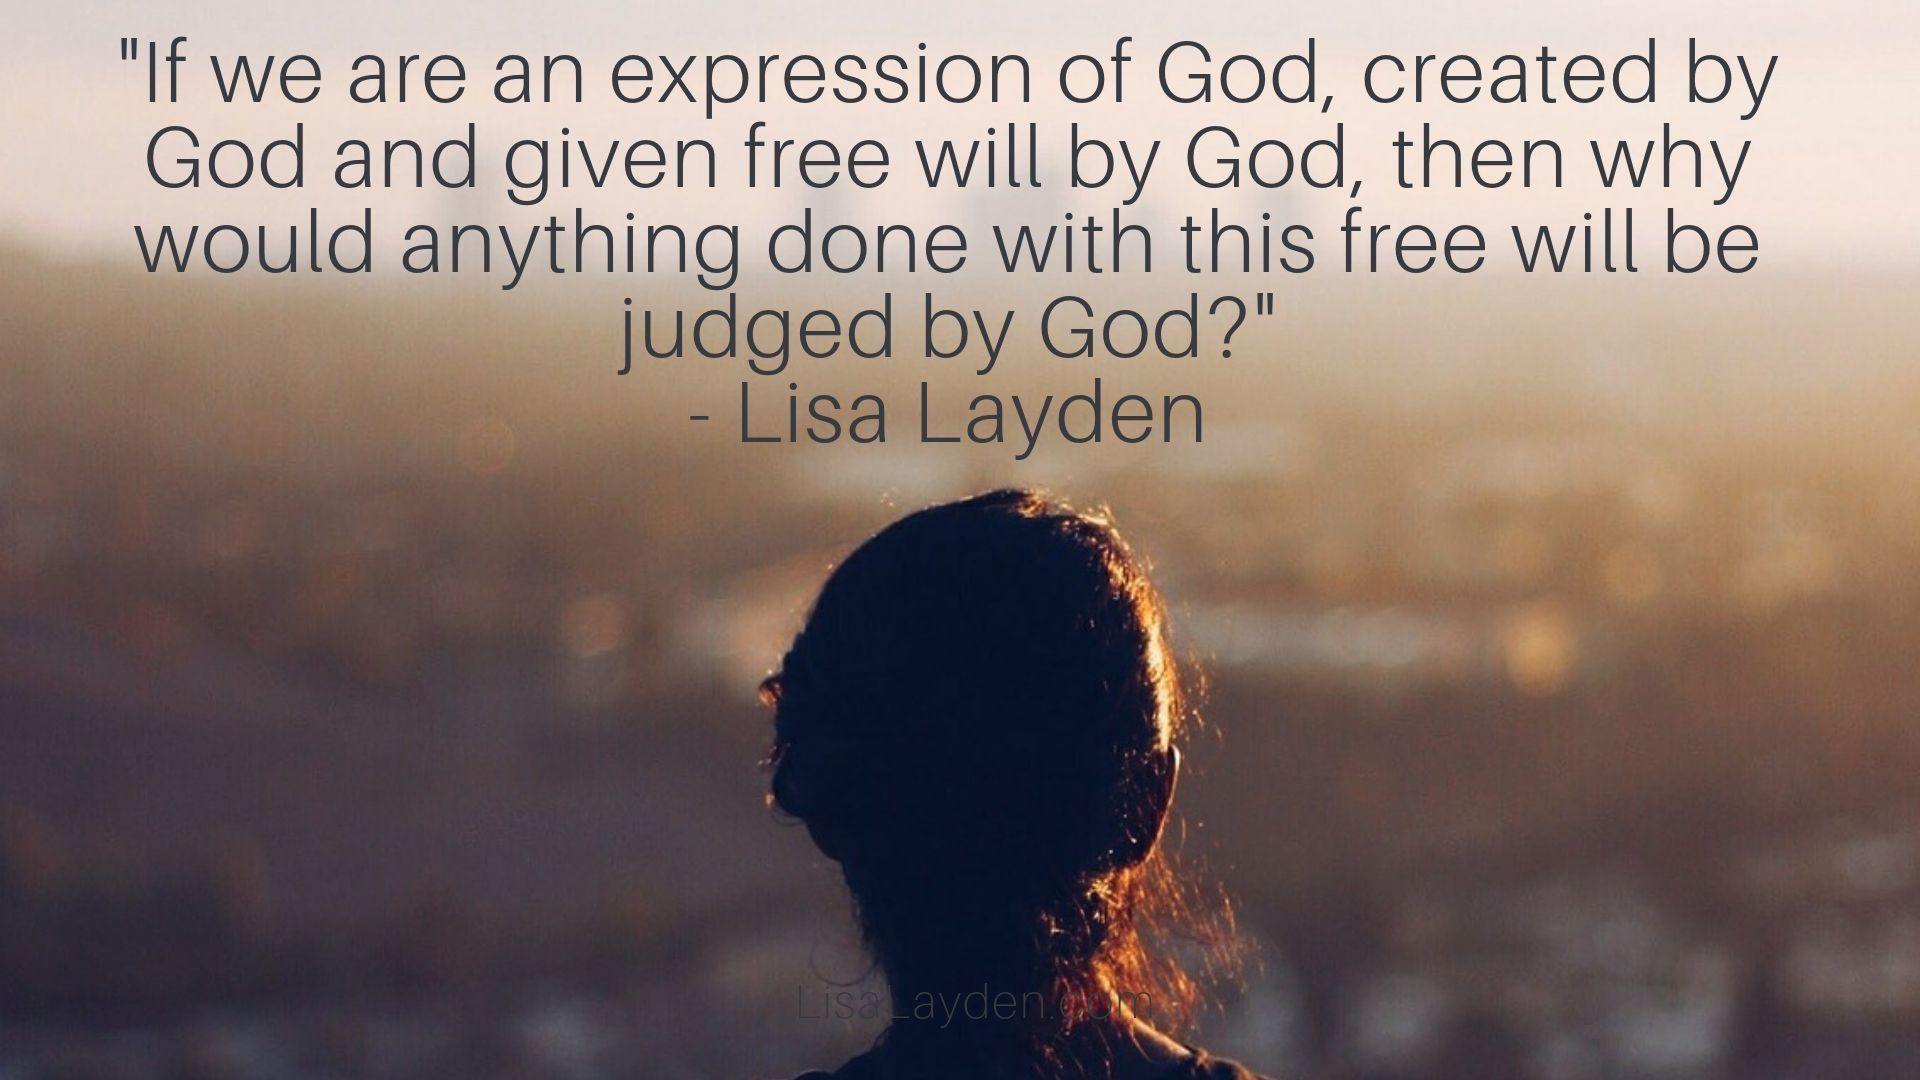 """Quote - """"If we are an expression of God, created by God and given free will by God, then why would anything done with this free will be judged by God?"""" – Lisa Layden"""